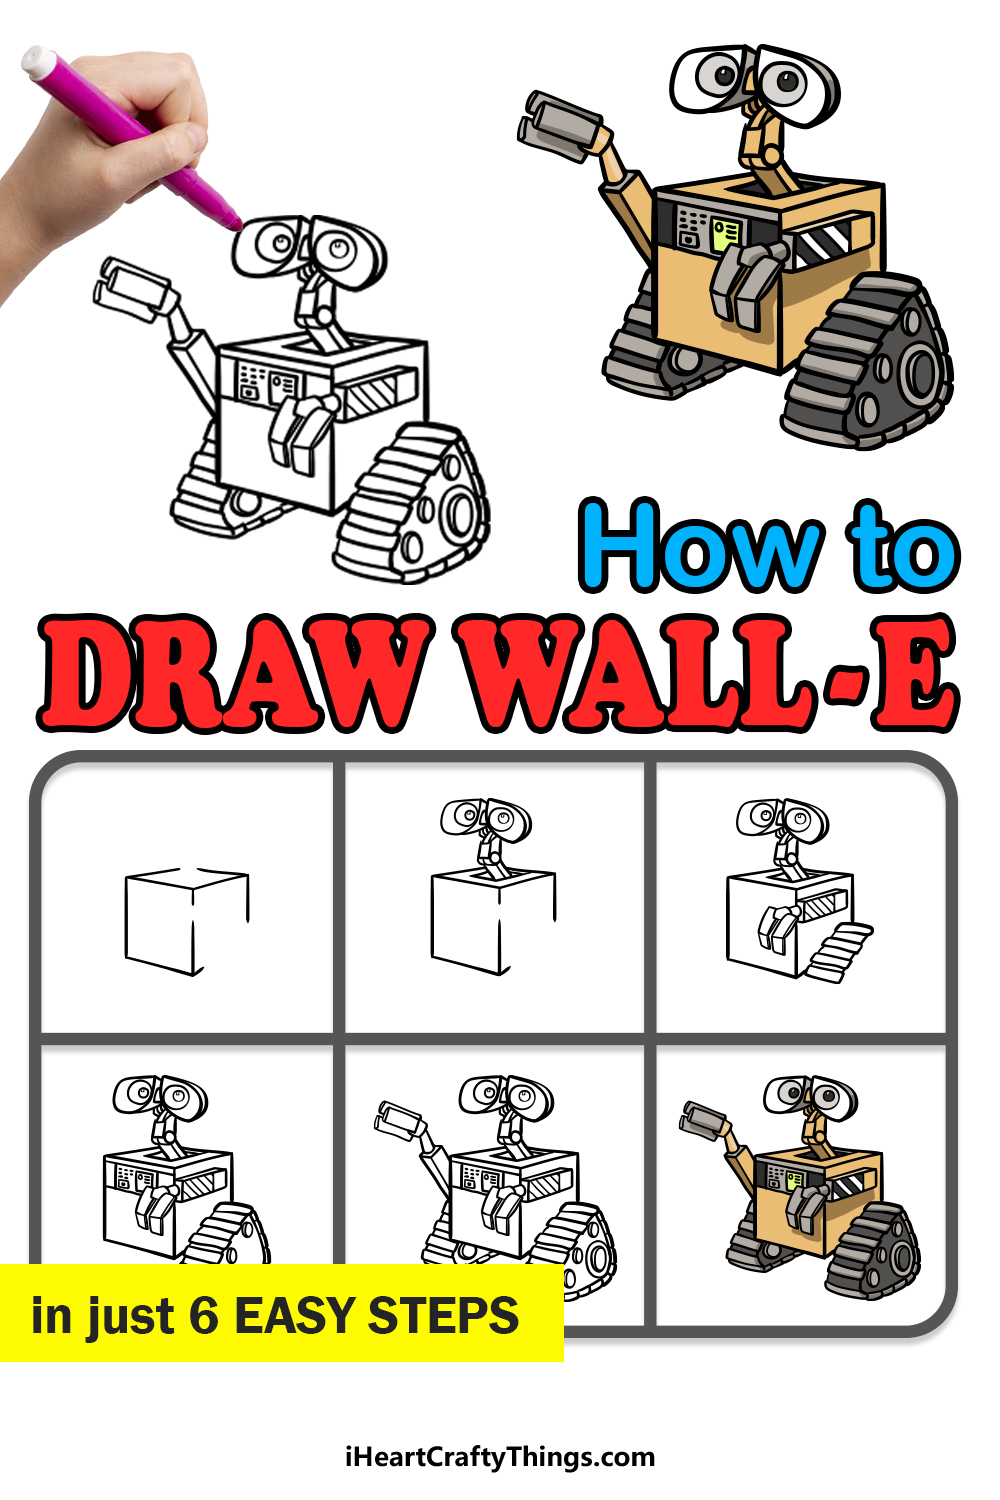 how to draw Wall-E in 6 easy steps